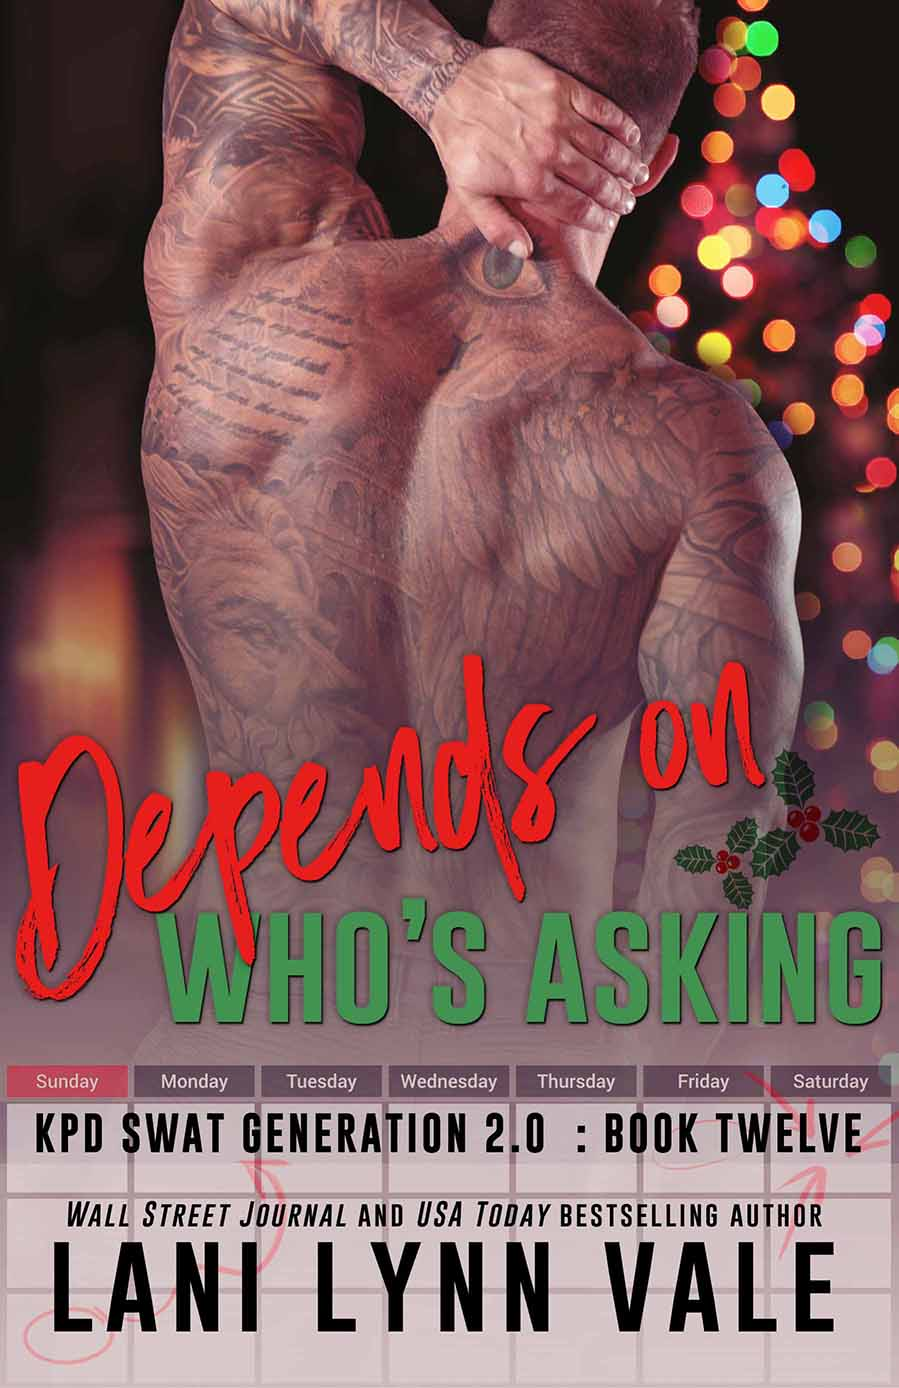 Cover Reveal: Depends On Who's Asking (SWAT Generation 2.0 #12) by Lani Lynn Vale